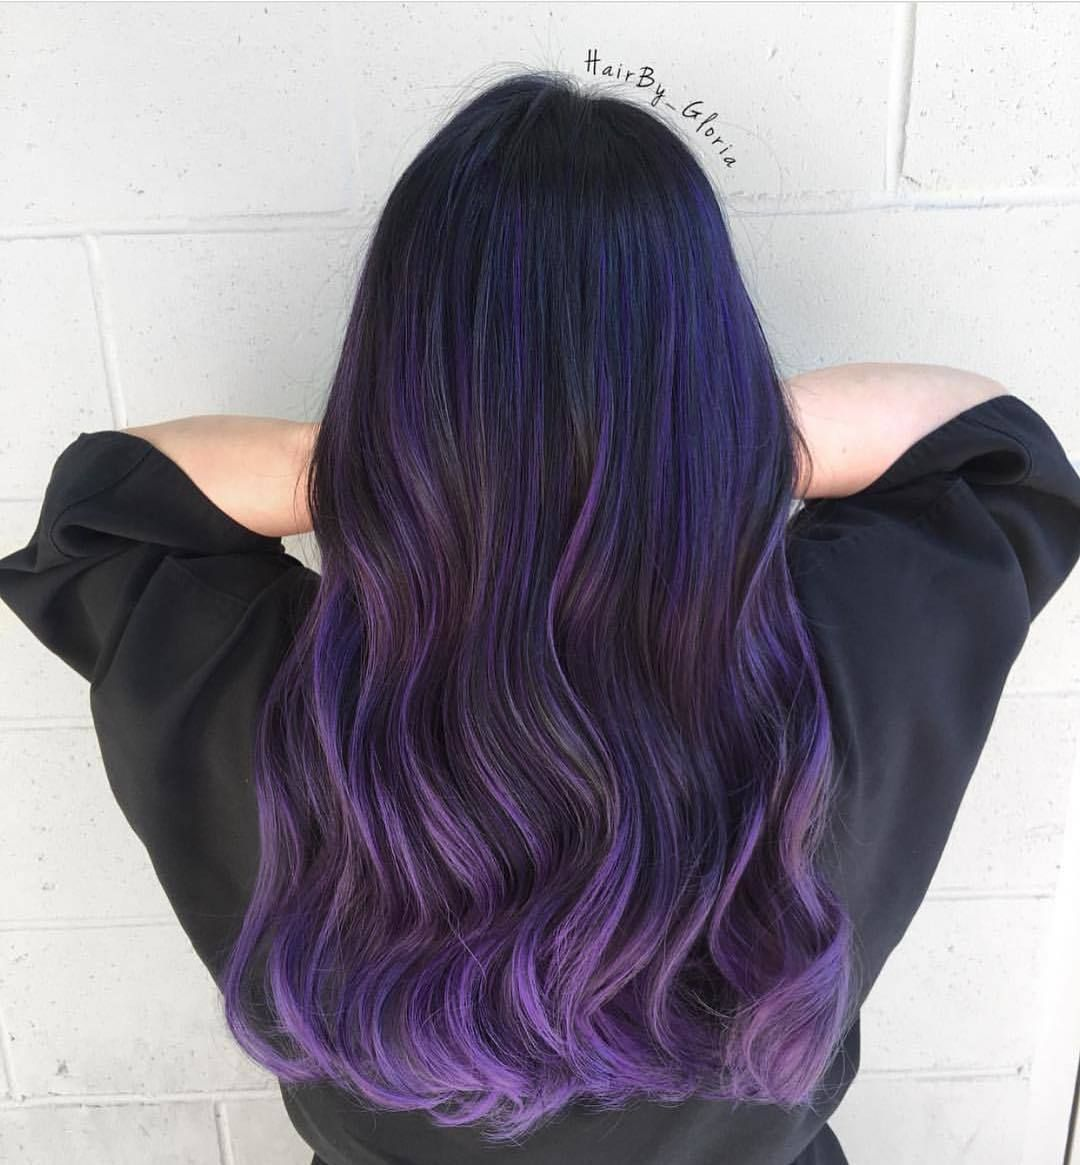 Black And Lavender Ombre Long Hair Purple Ombre Hair Ombre Hair Dark Ombre Hair